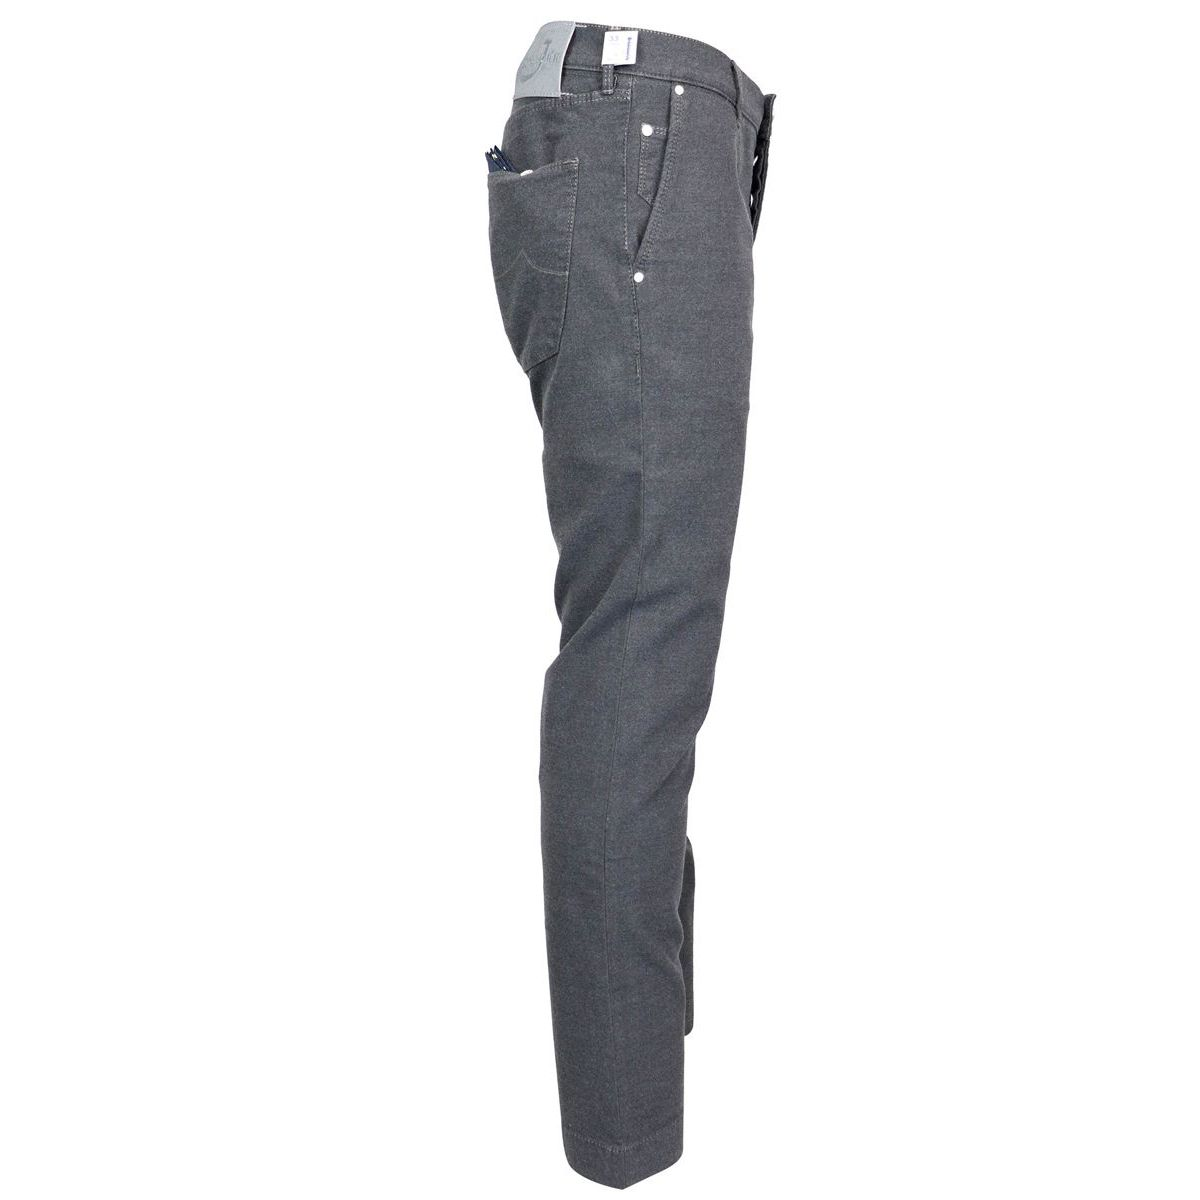 Elasticated trousers pocket america J676 COMF 01719 Anthracite Jacob Cohen